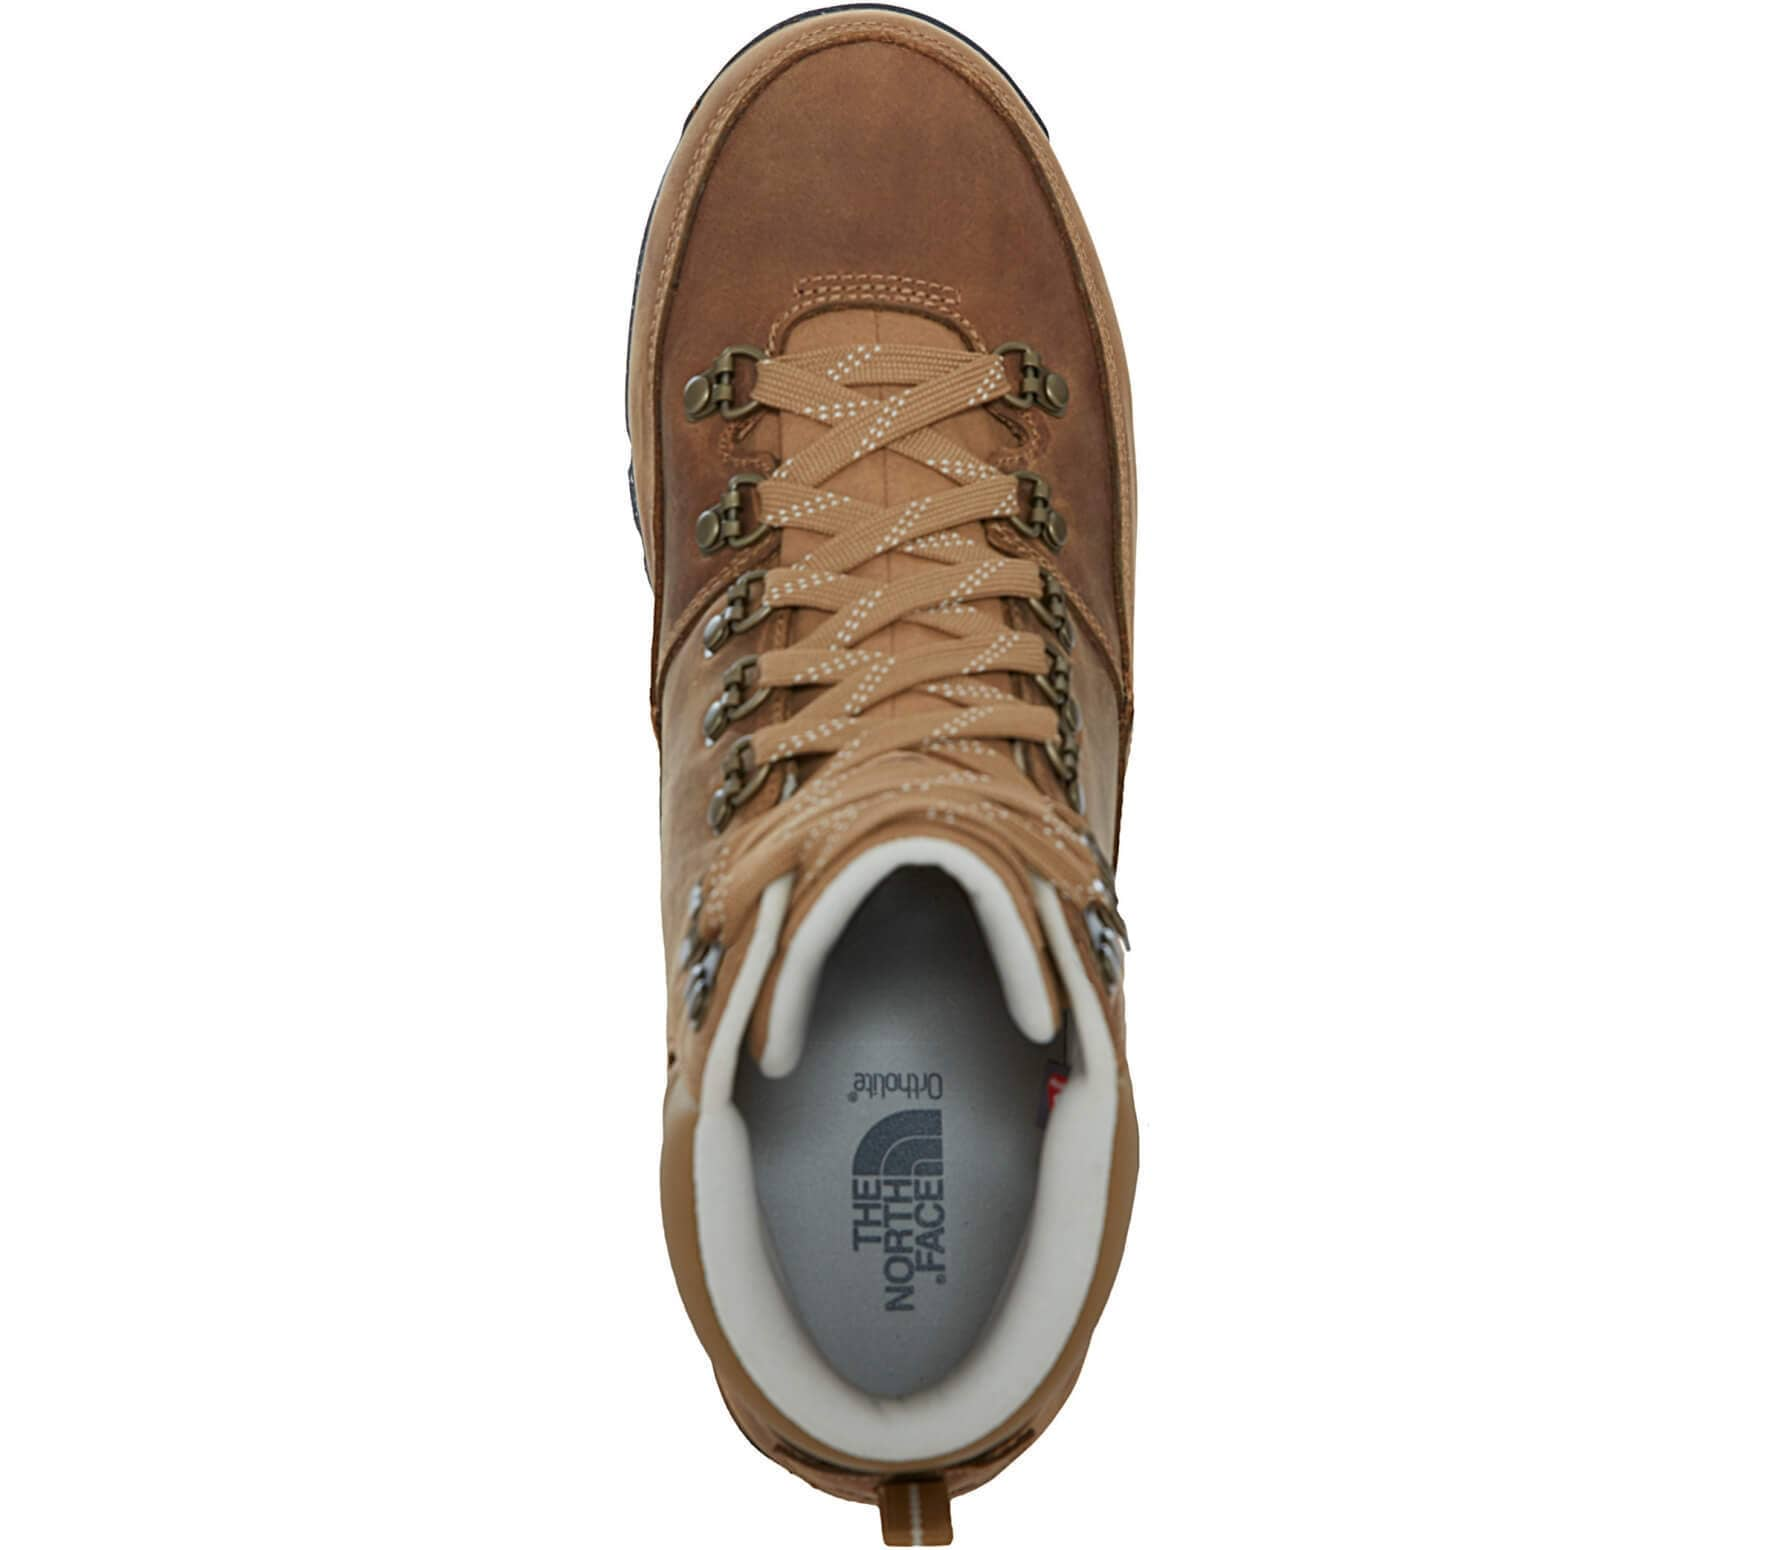 The North Face - Back To Berkeley Redux Leather chaussures d'hiver pour hommes (marron/beige)